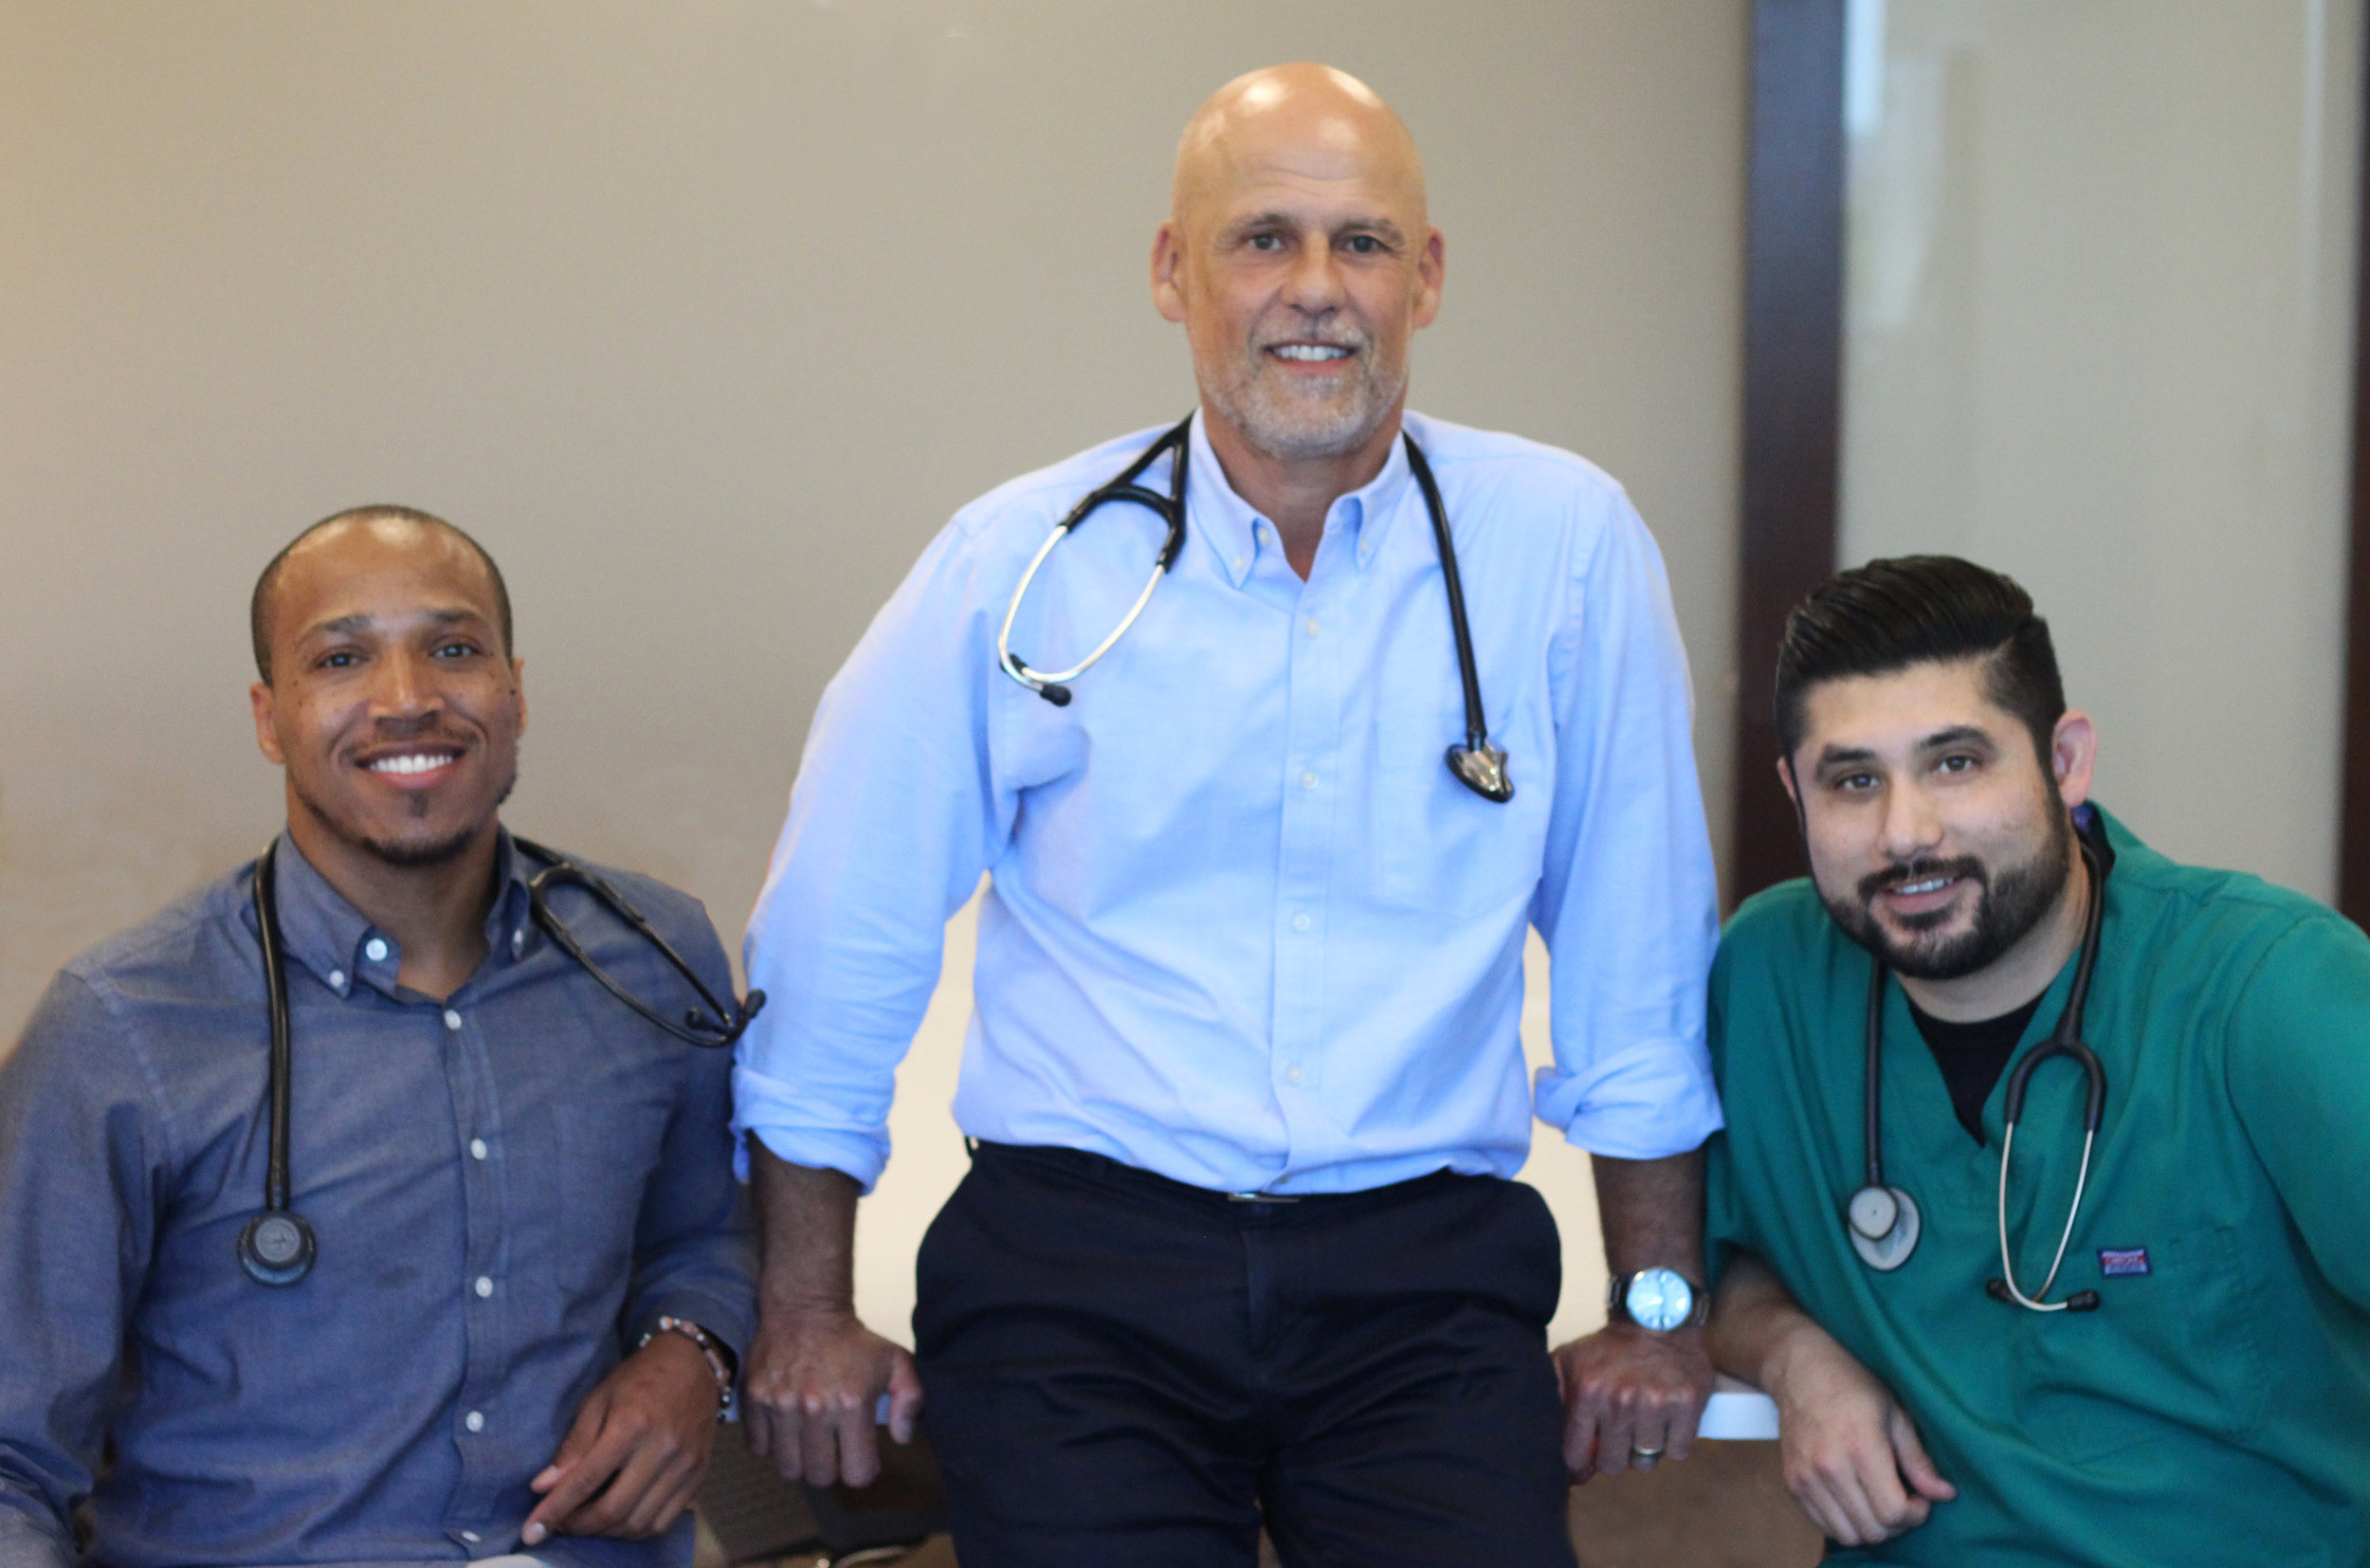 Left: Jamal T. Bracken - Physician's Assistant, Middle: Dr. Phillip Musikanth M.D., Right: Tony Segovia - Medical Assistant